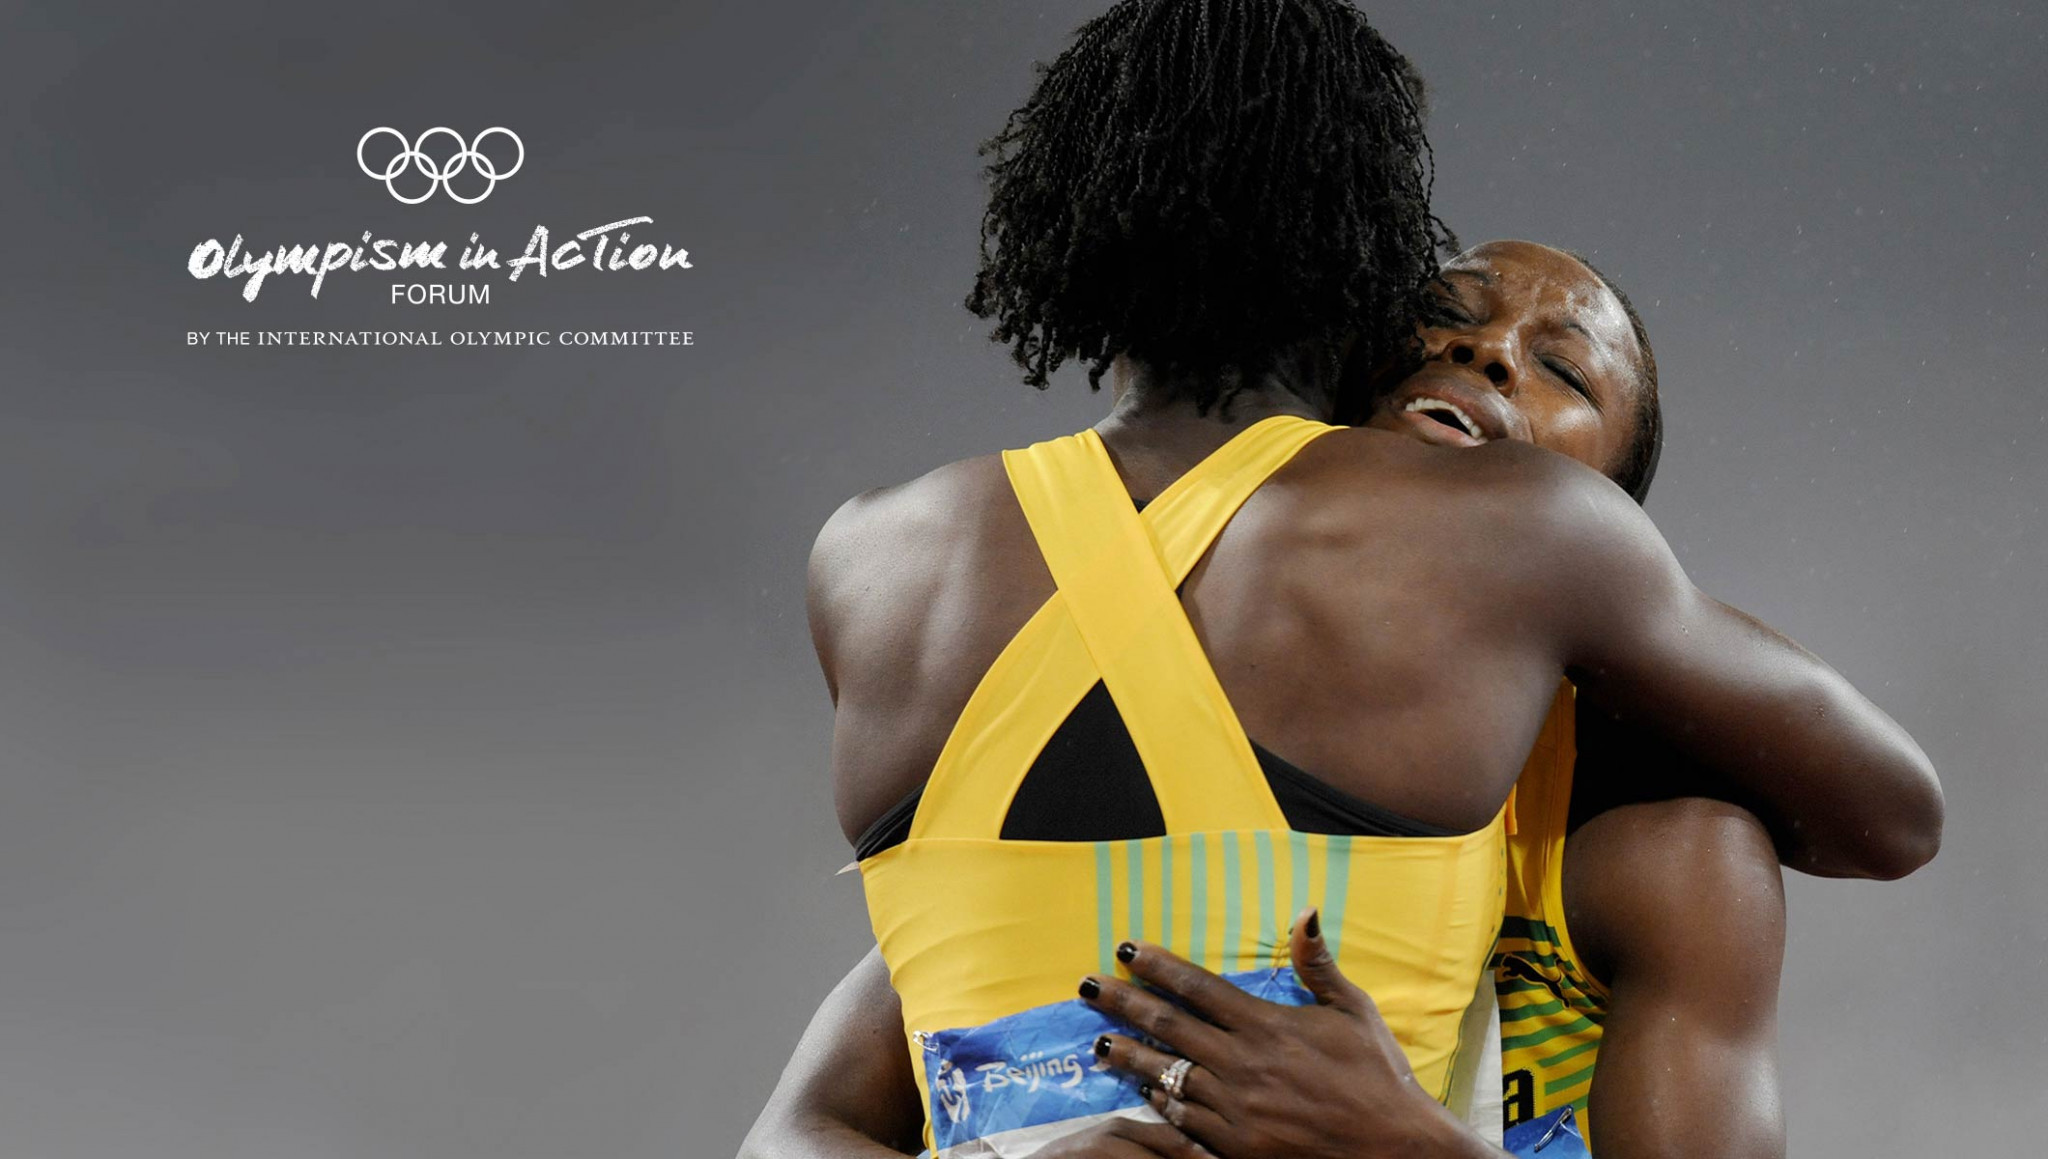 The Olympism in Action Forum is set to begin tomorrow ©IOC